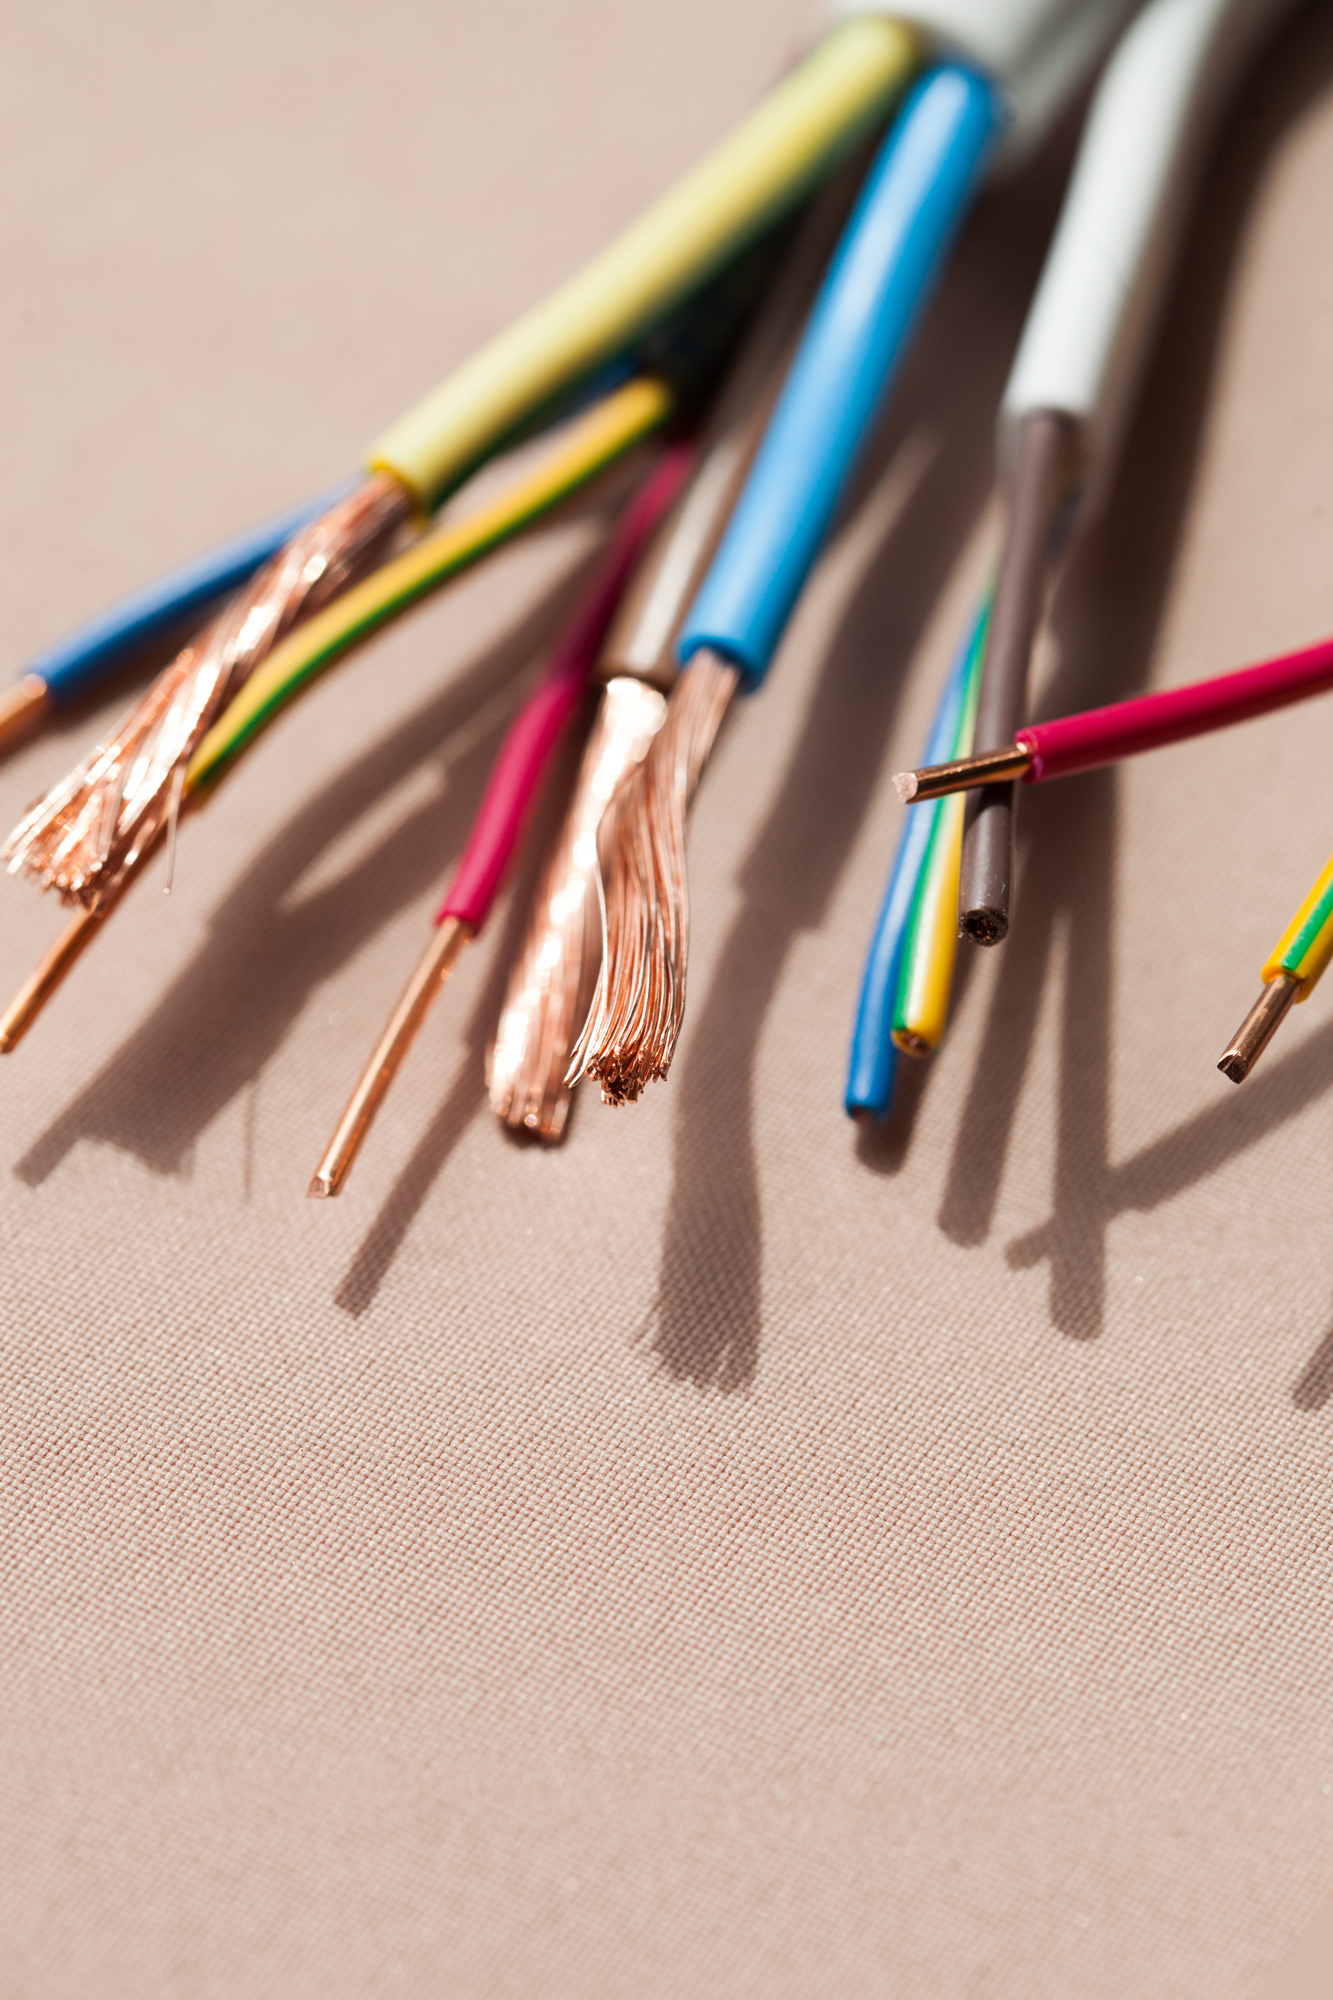 Tremendous 3 Dangers Of Using Aluminum Wiring In Your Home Tdf Electrical Wiring Digital Resources Cettecompassionincorg